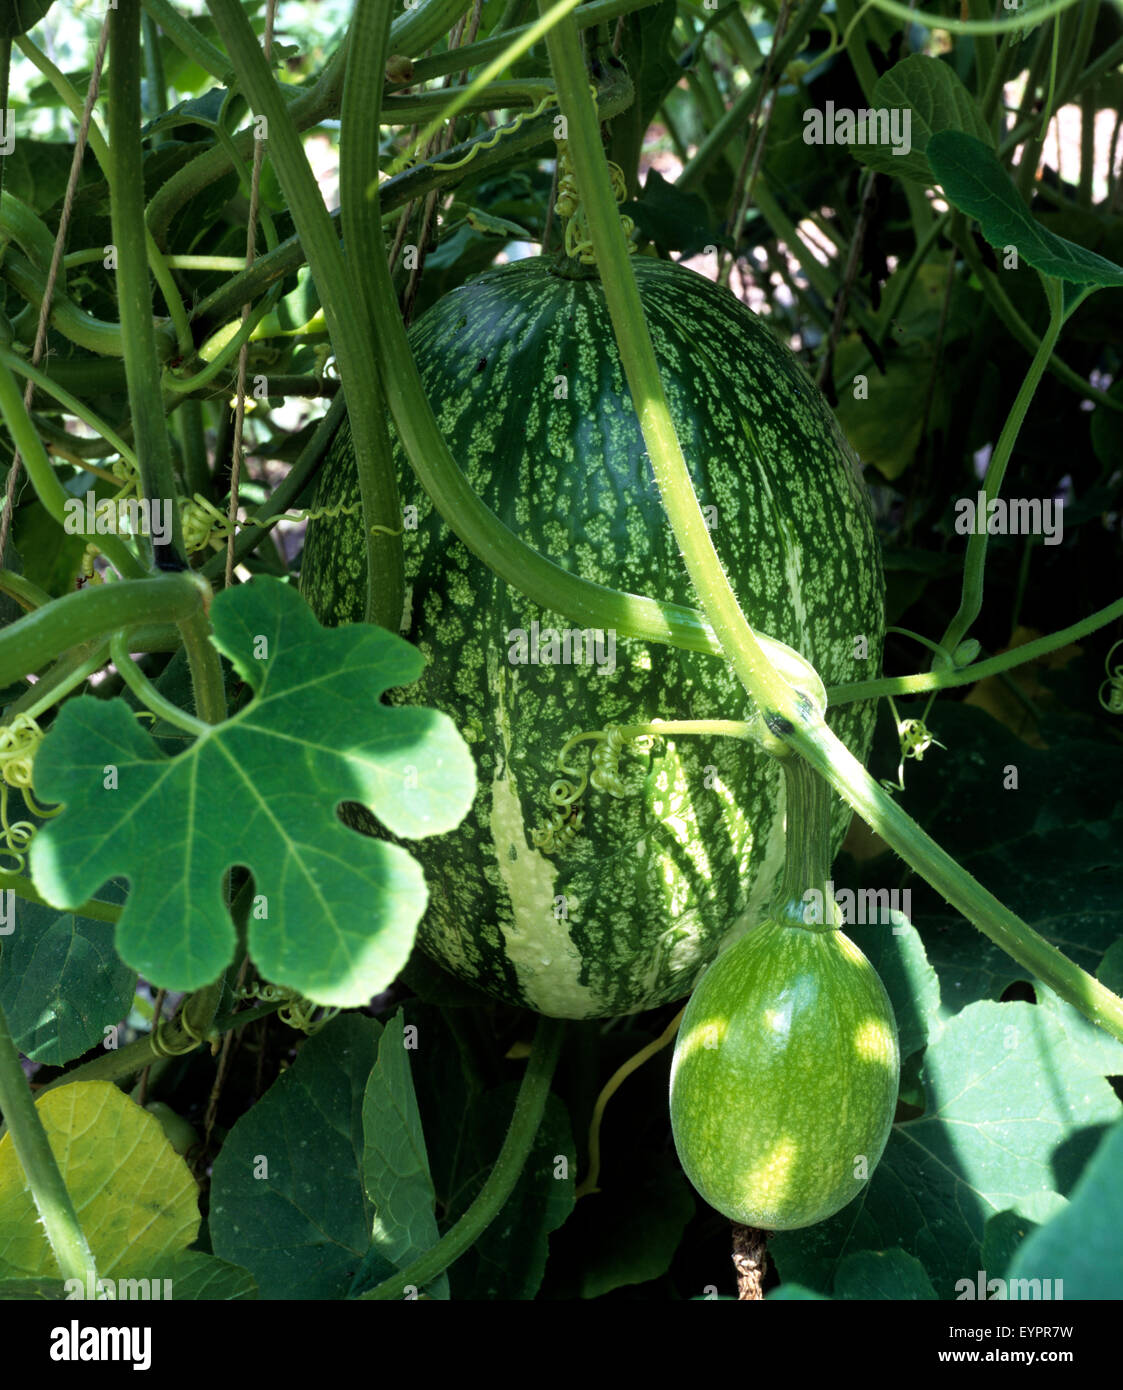 Vegetables Creeper Creepers Climbing Plant Stock Photos